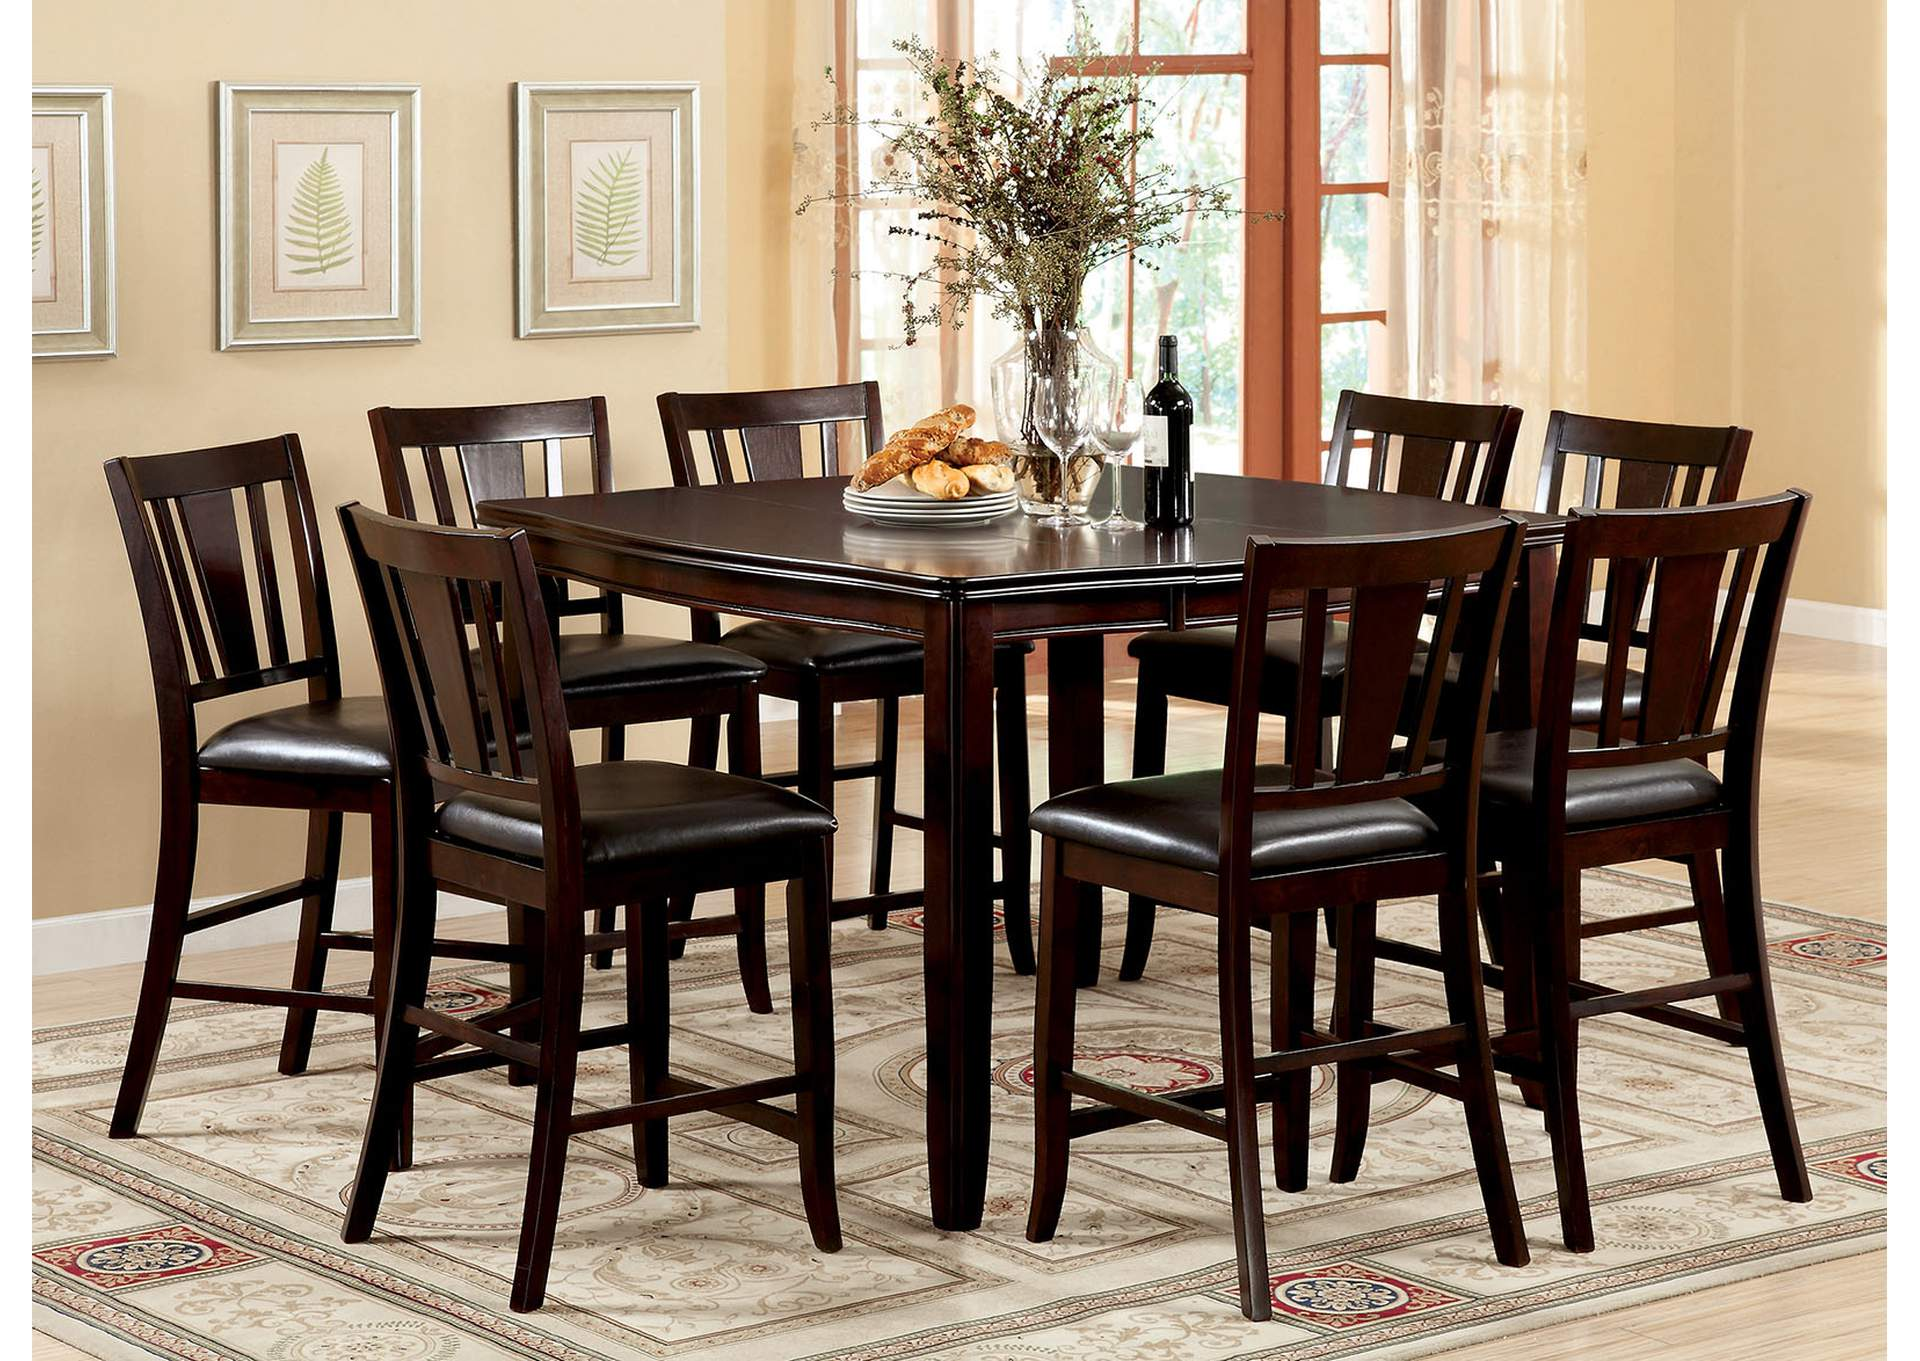 Edgewood Ll Espresso Extension Leaf Counter Height Table W/6 Counter Height  Chairs,Furniture